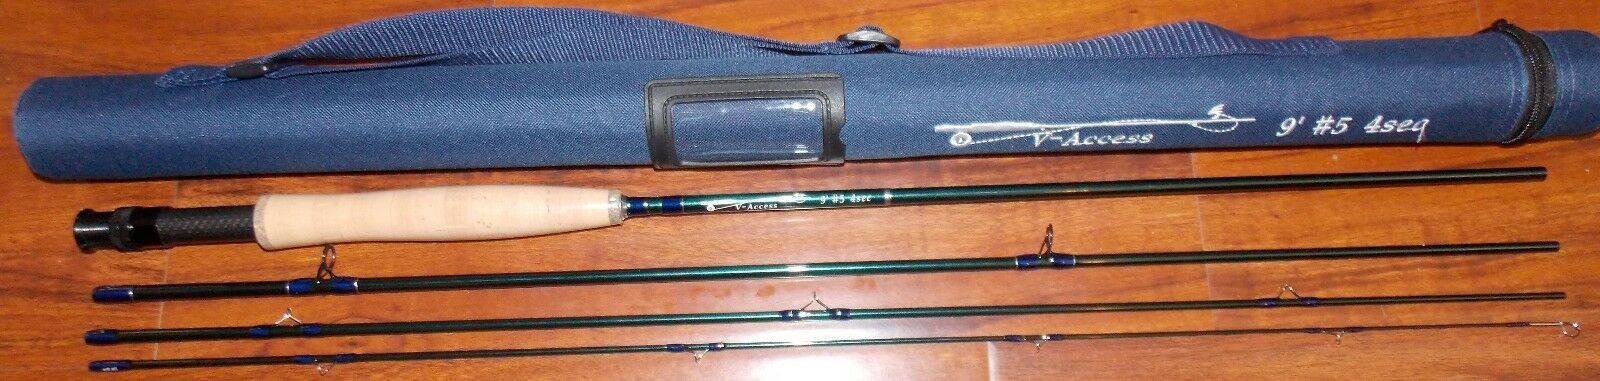 5 WT V-Access  Fly Fishing Rod  9   ft  4 Sec. with Tube  FREE 3 DAY SHIPPING  enjoy saving 30-50% off